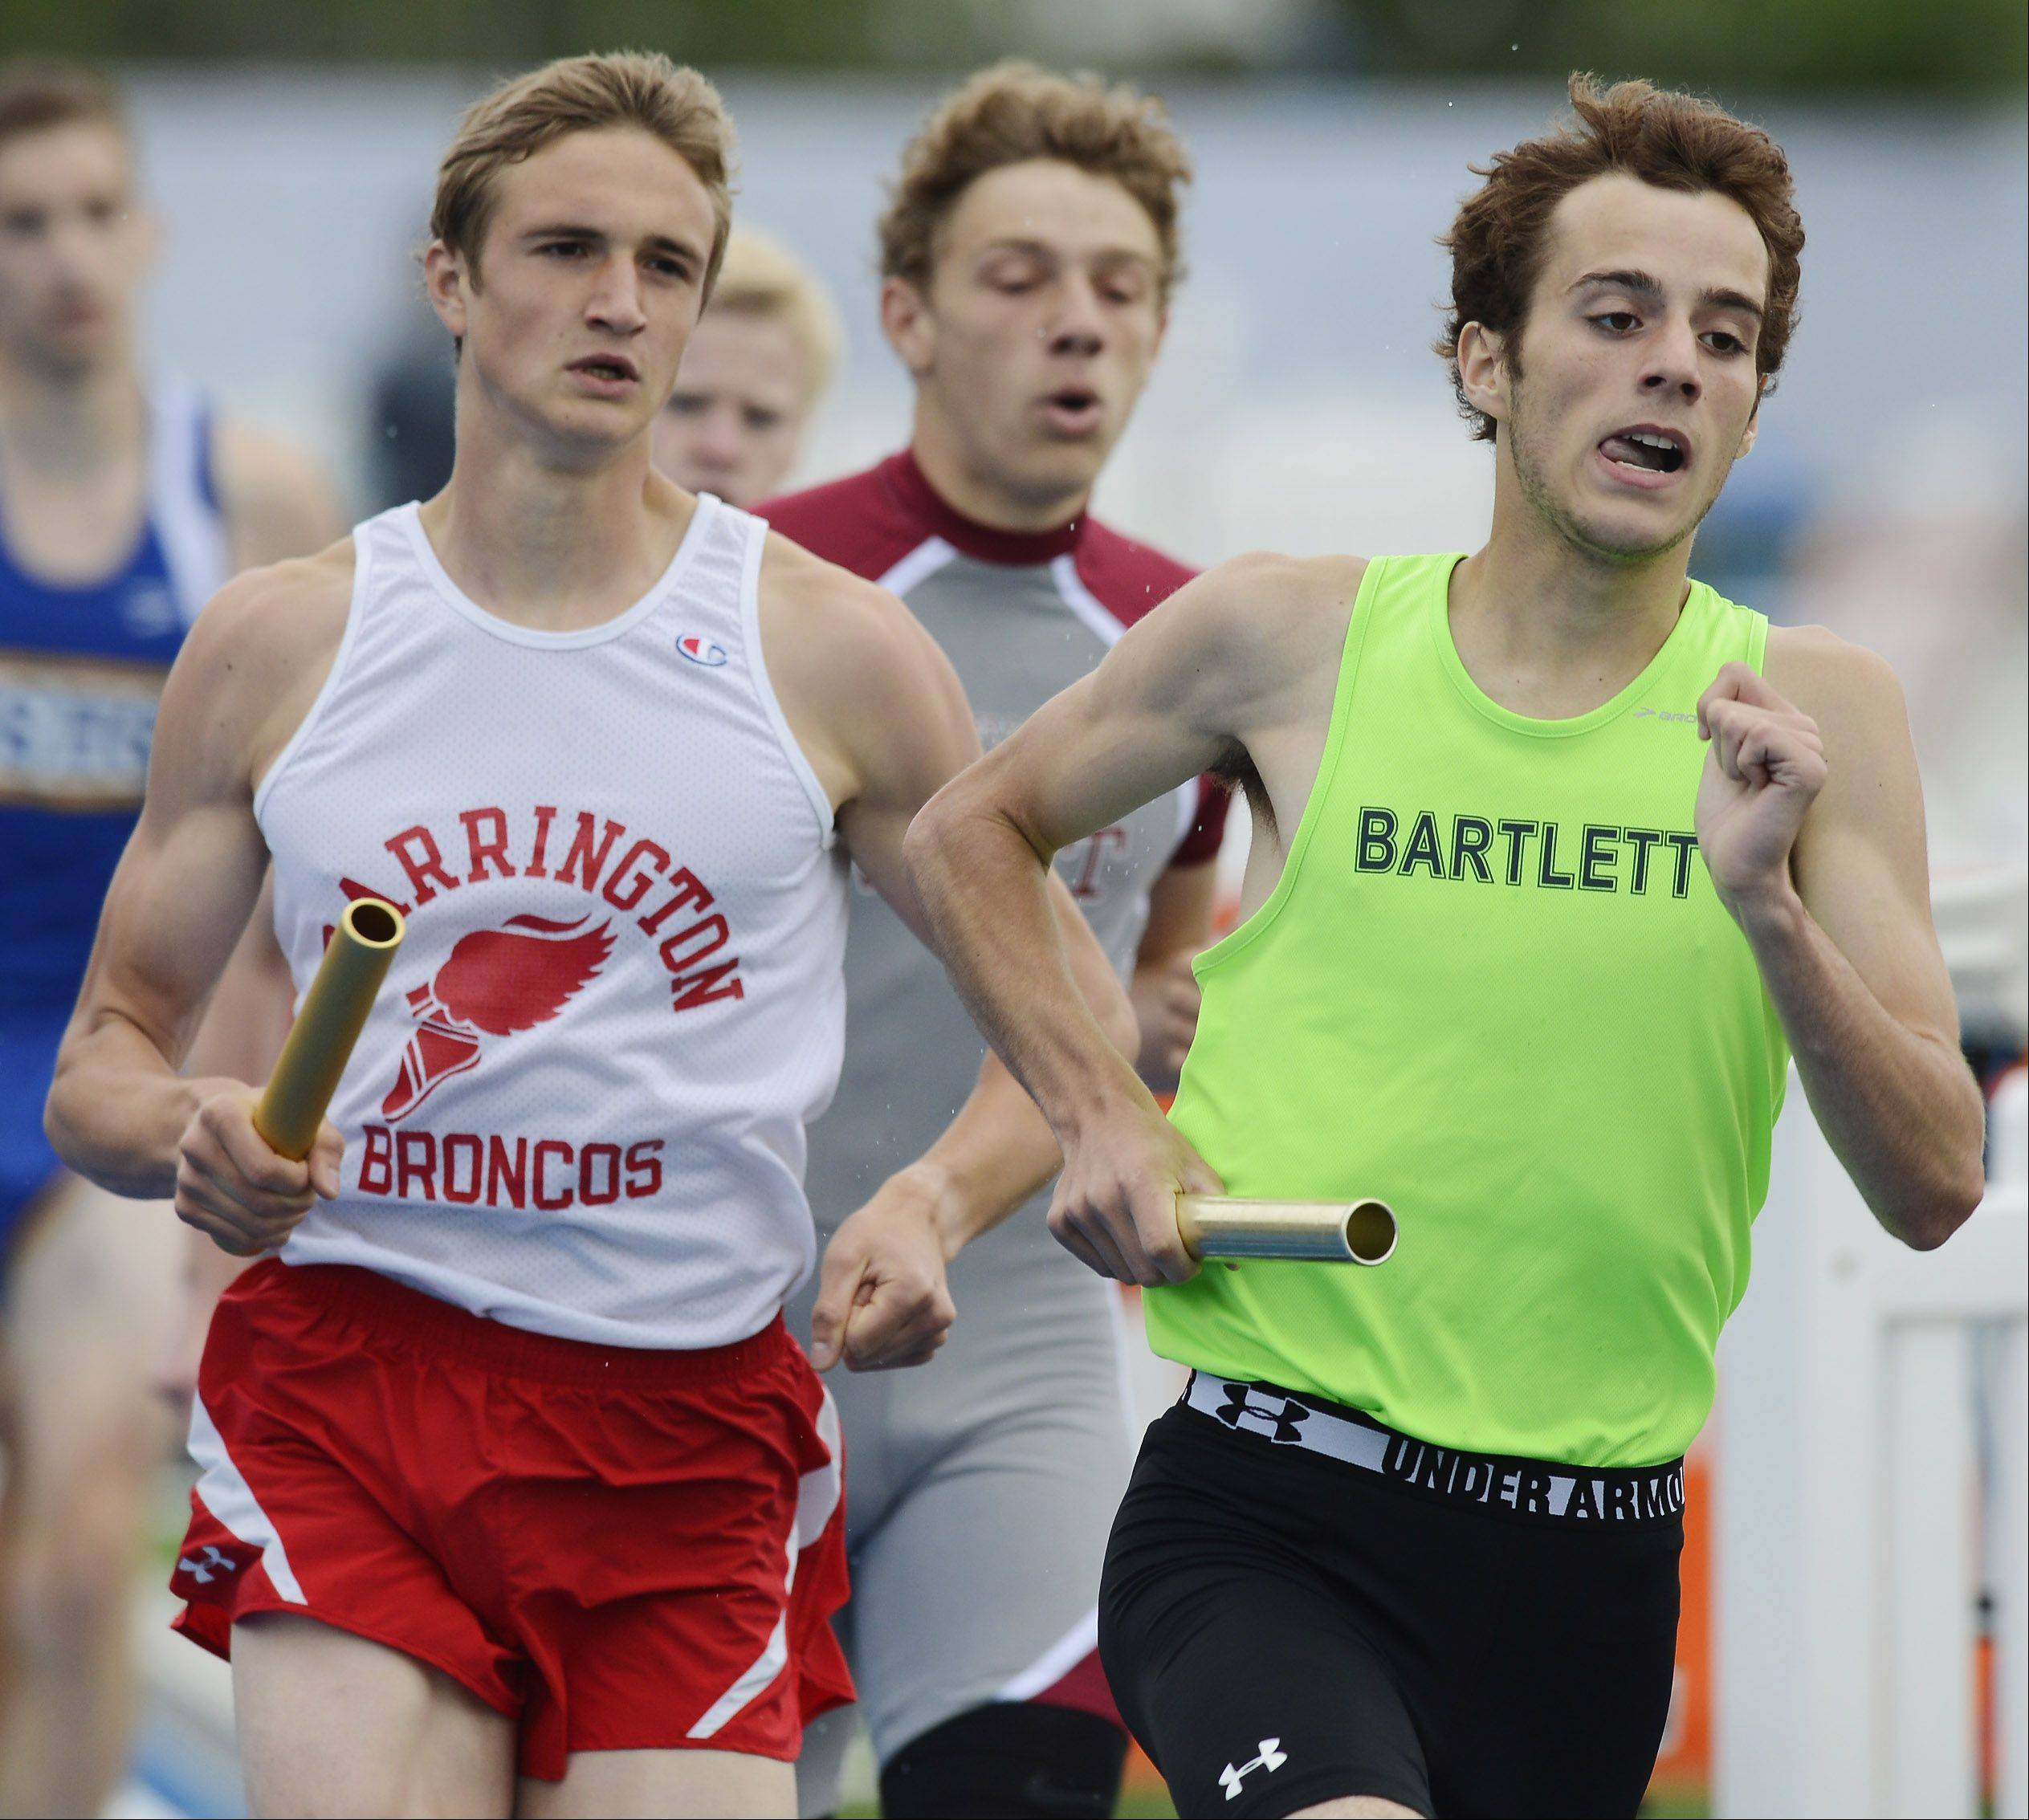 Barrington's David Cerny, left, is right behind Bartlett's Matt Hess in the Class 3A 4x800-meter relay during the boys track state finals in Charleston on Saturday. Barrington won the event.